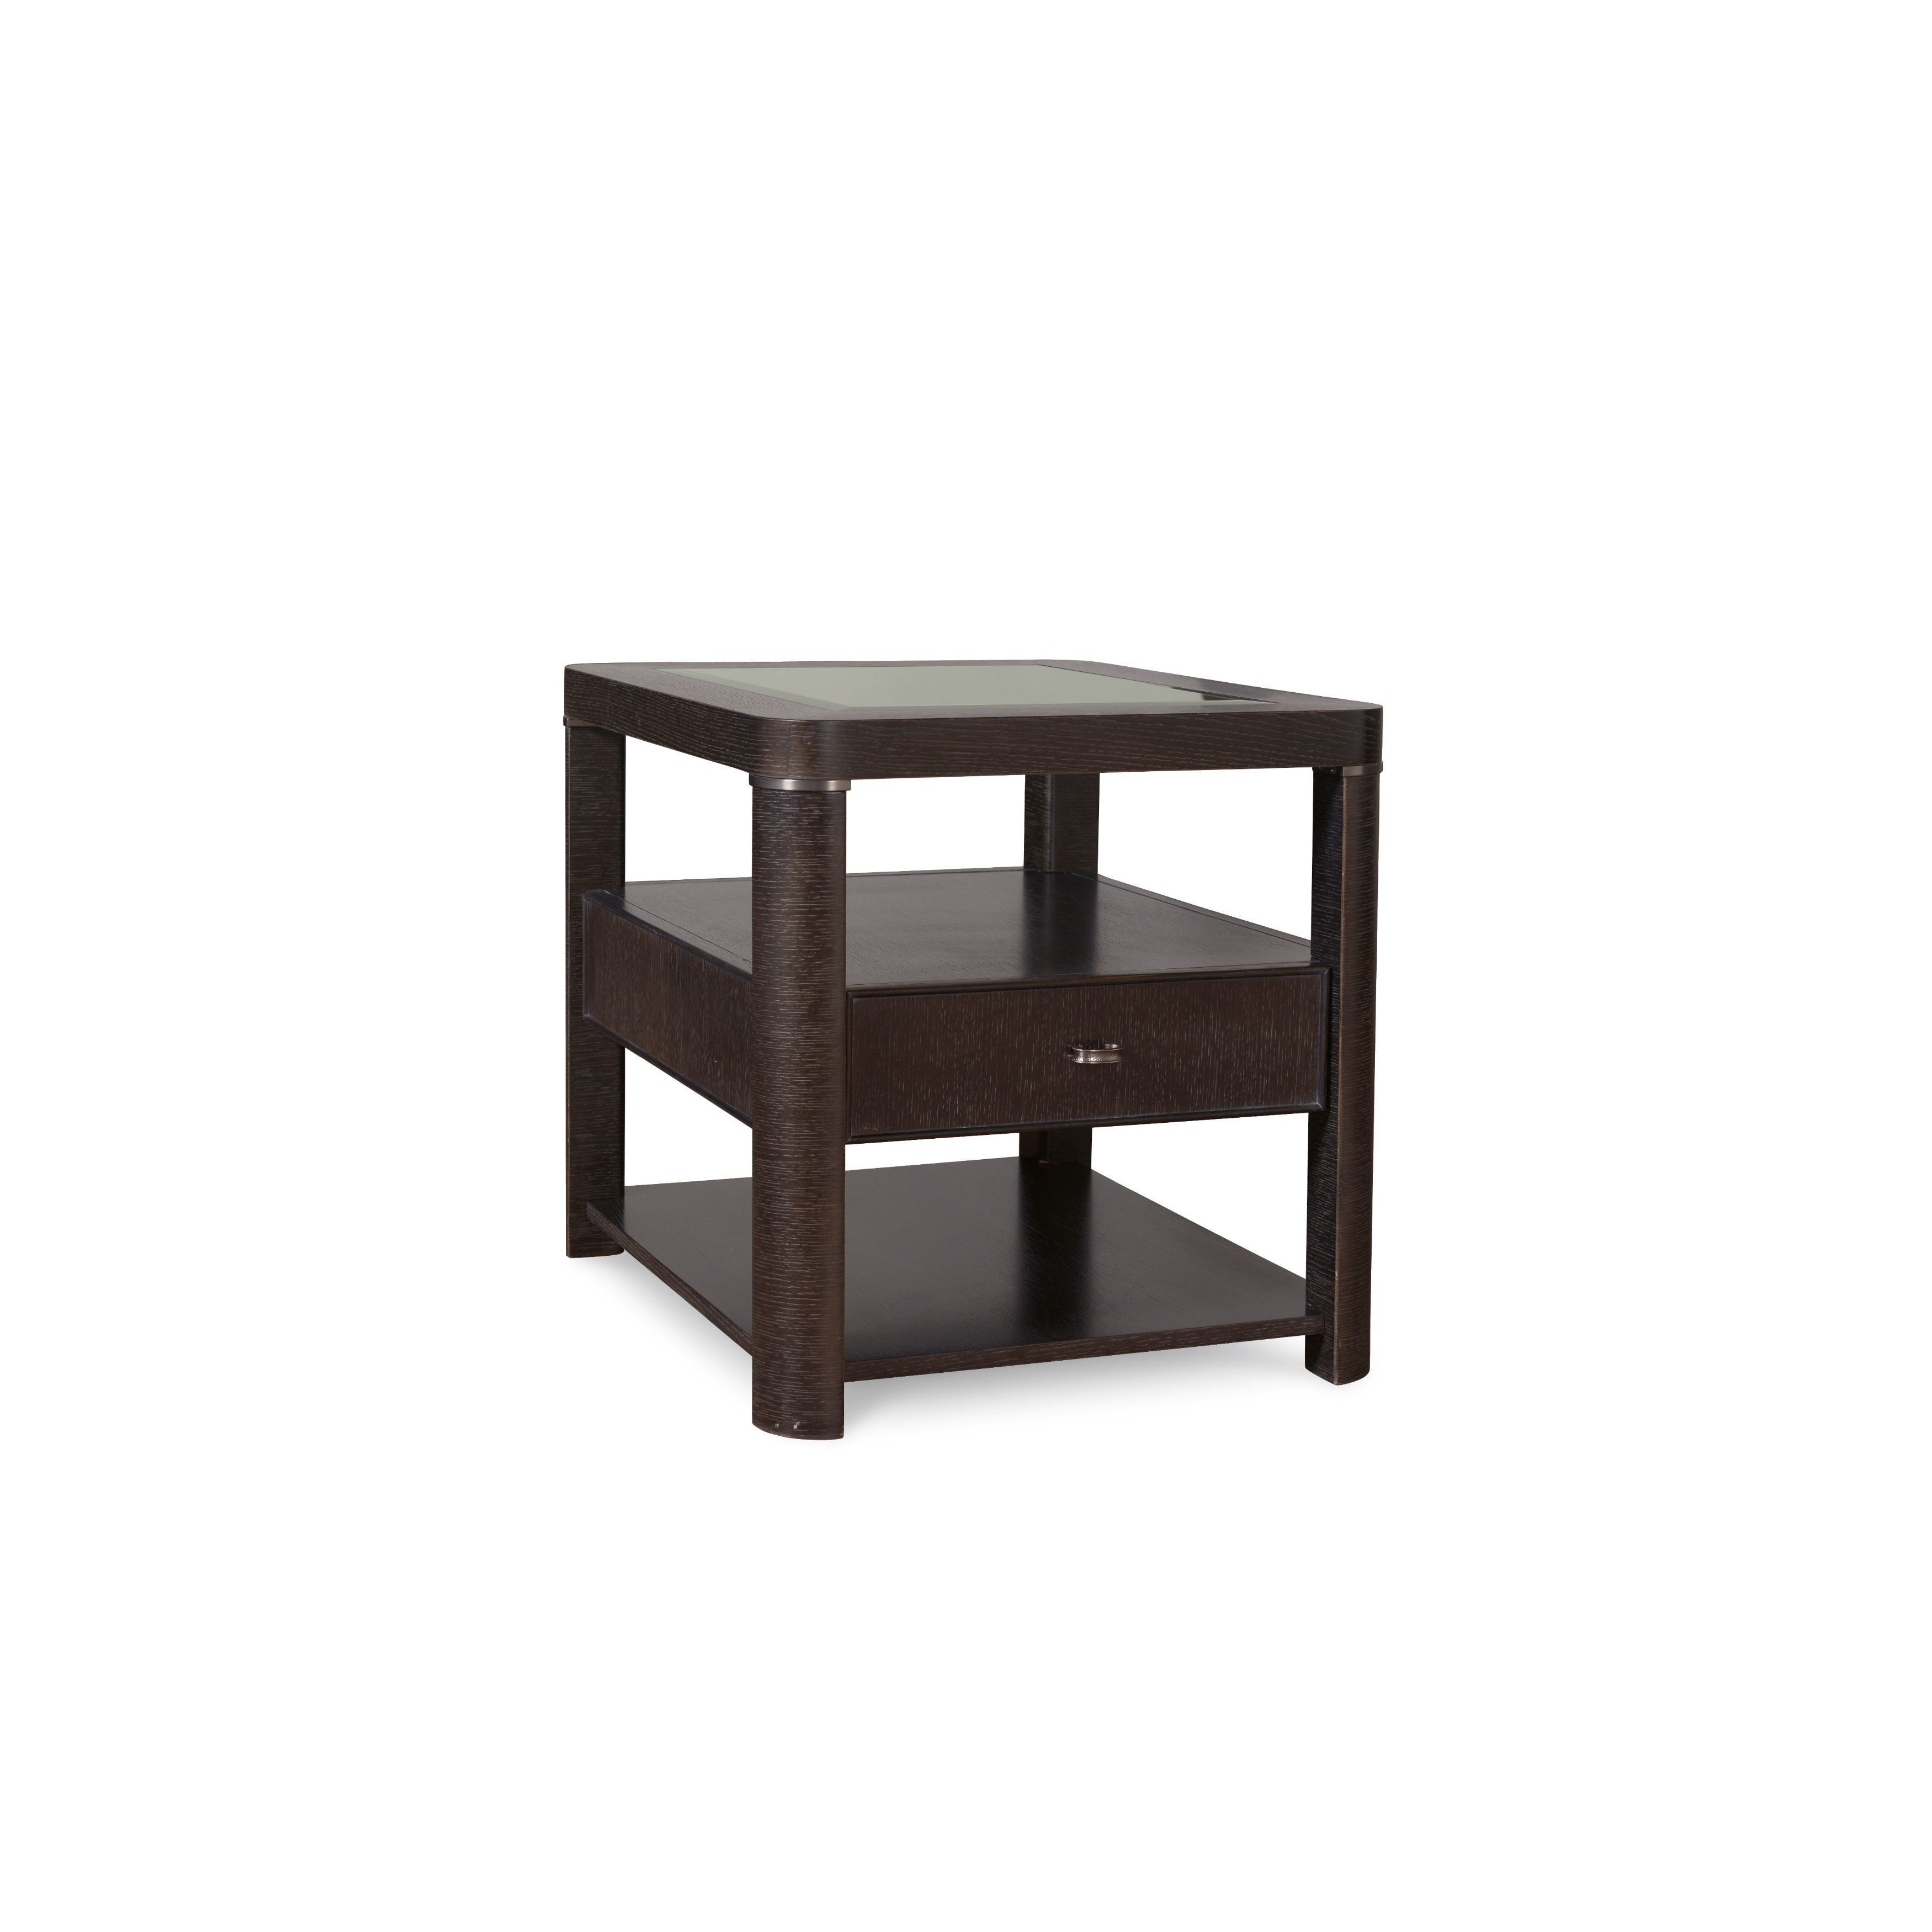 A.R.T. Furniture Greenpoint Coffee Bean Brown Wood Rectangular End Table By  A.R.T. Furniture